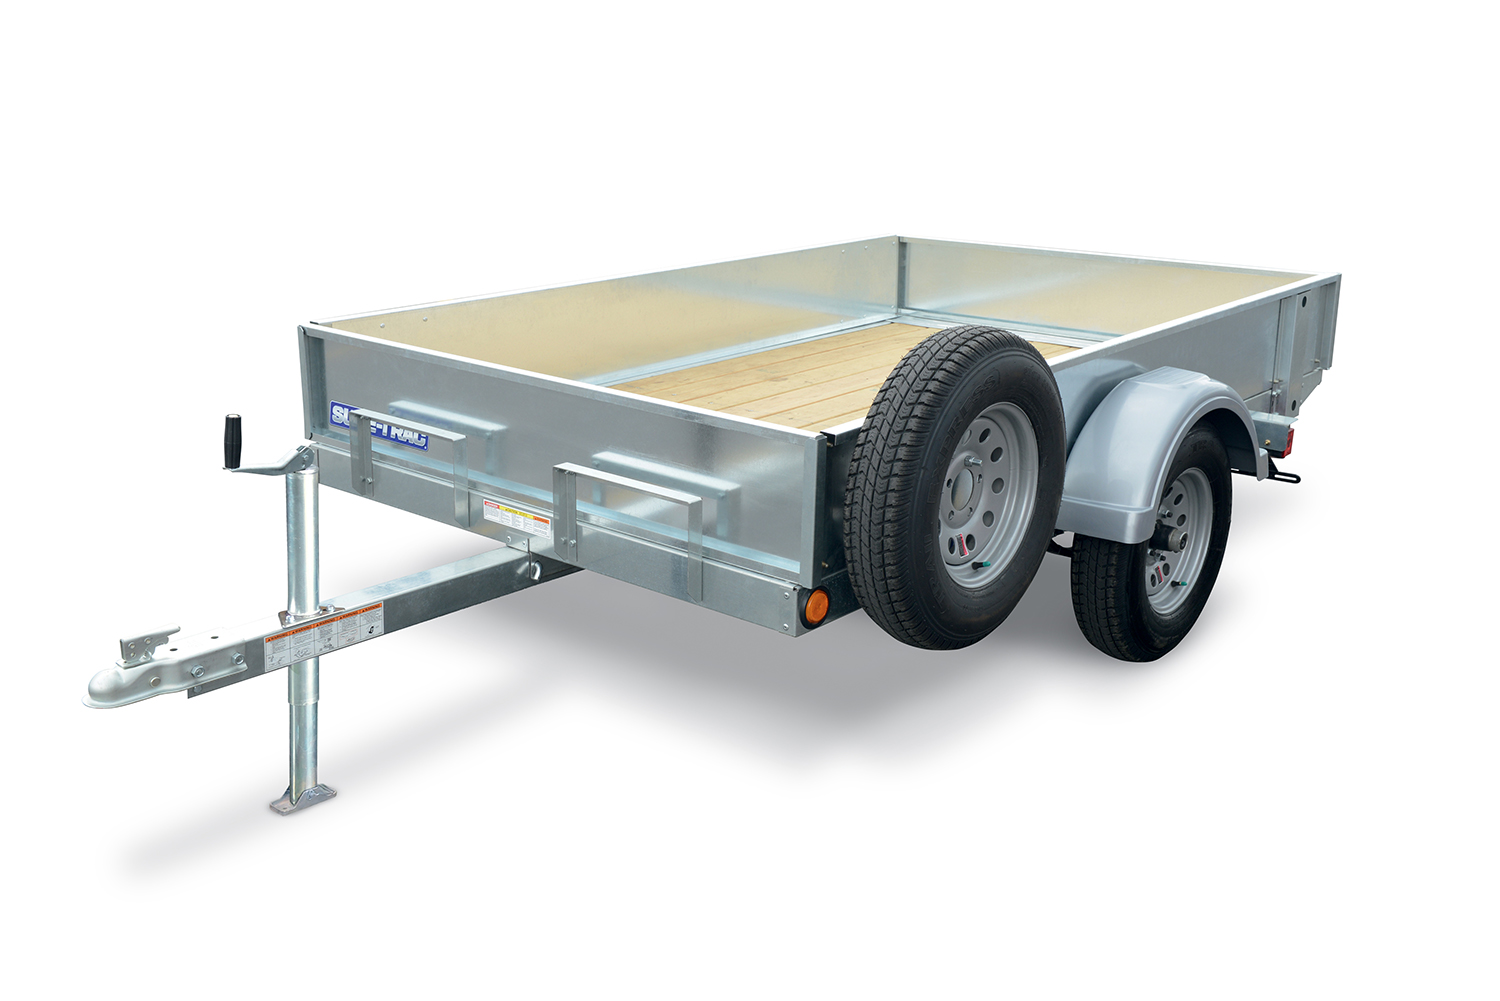 Shown with optional Galvanized Steel High Side Kit and Spare Tire